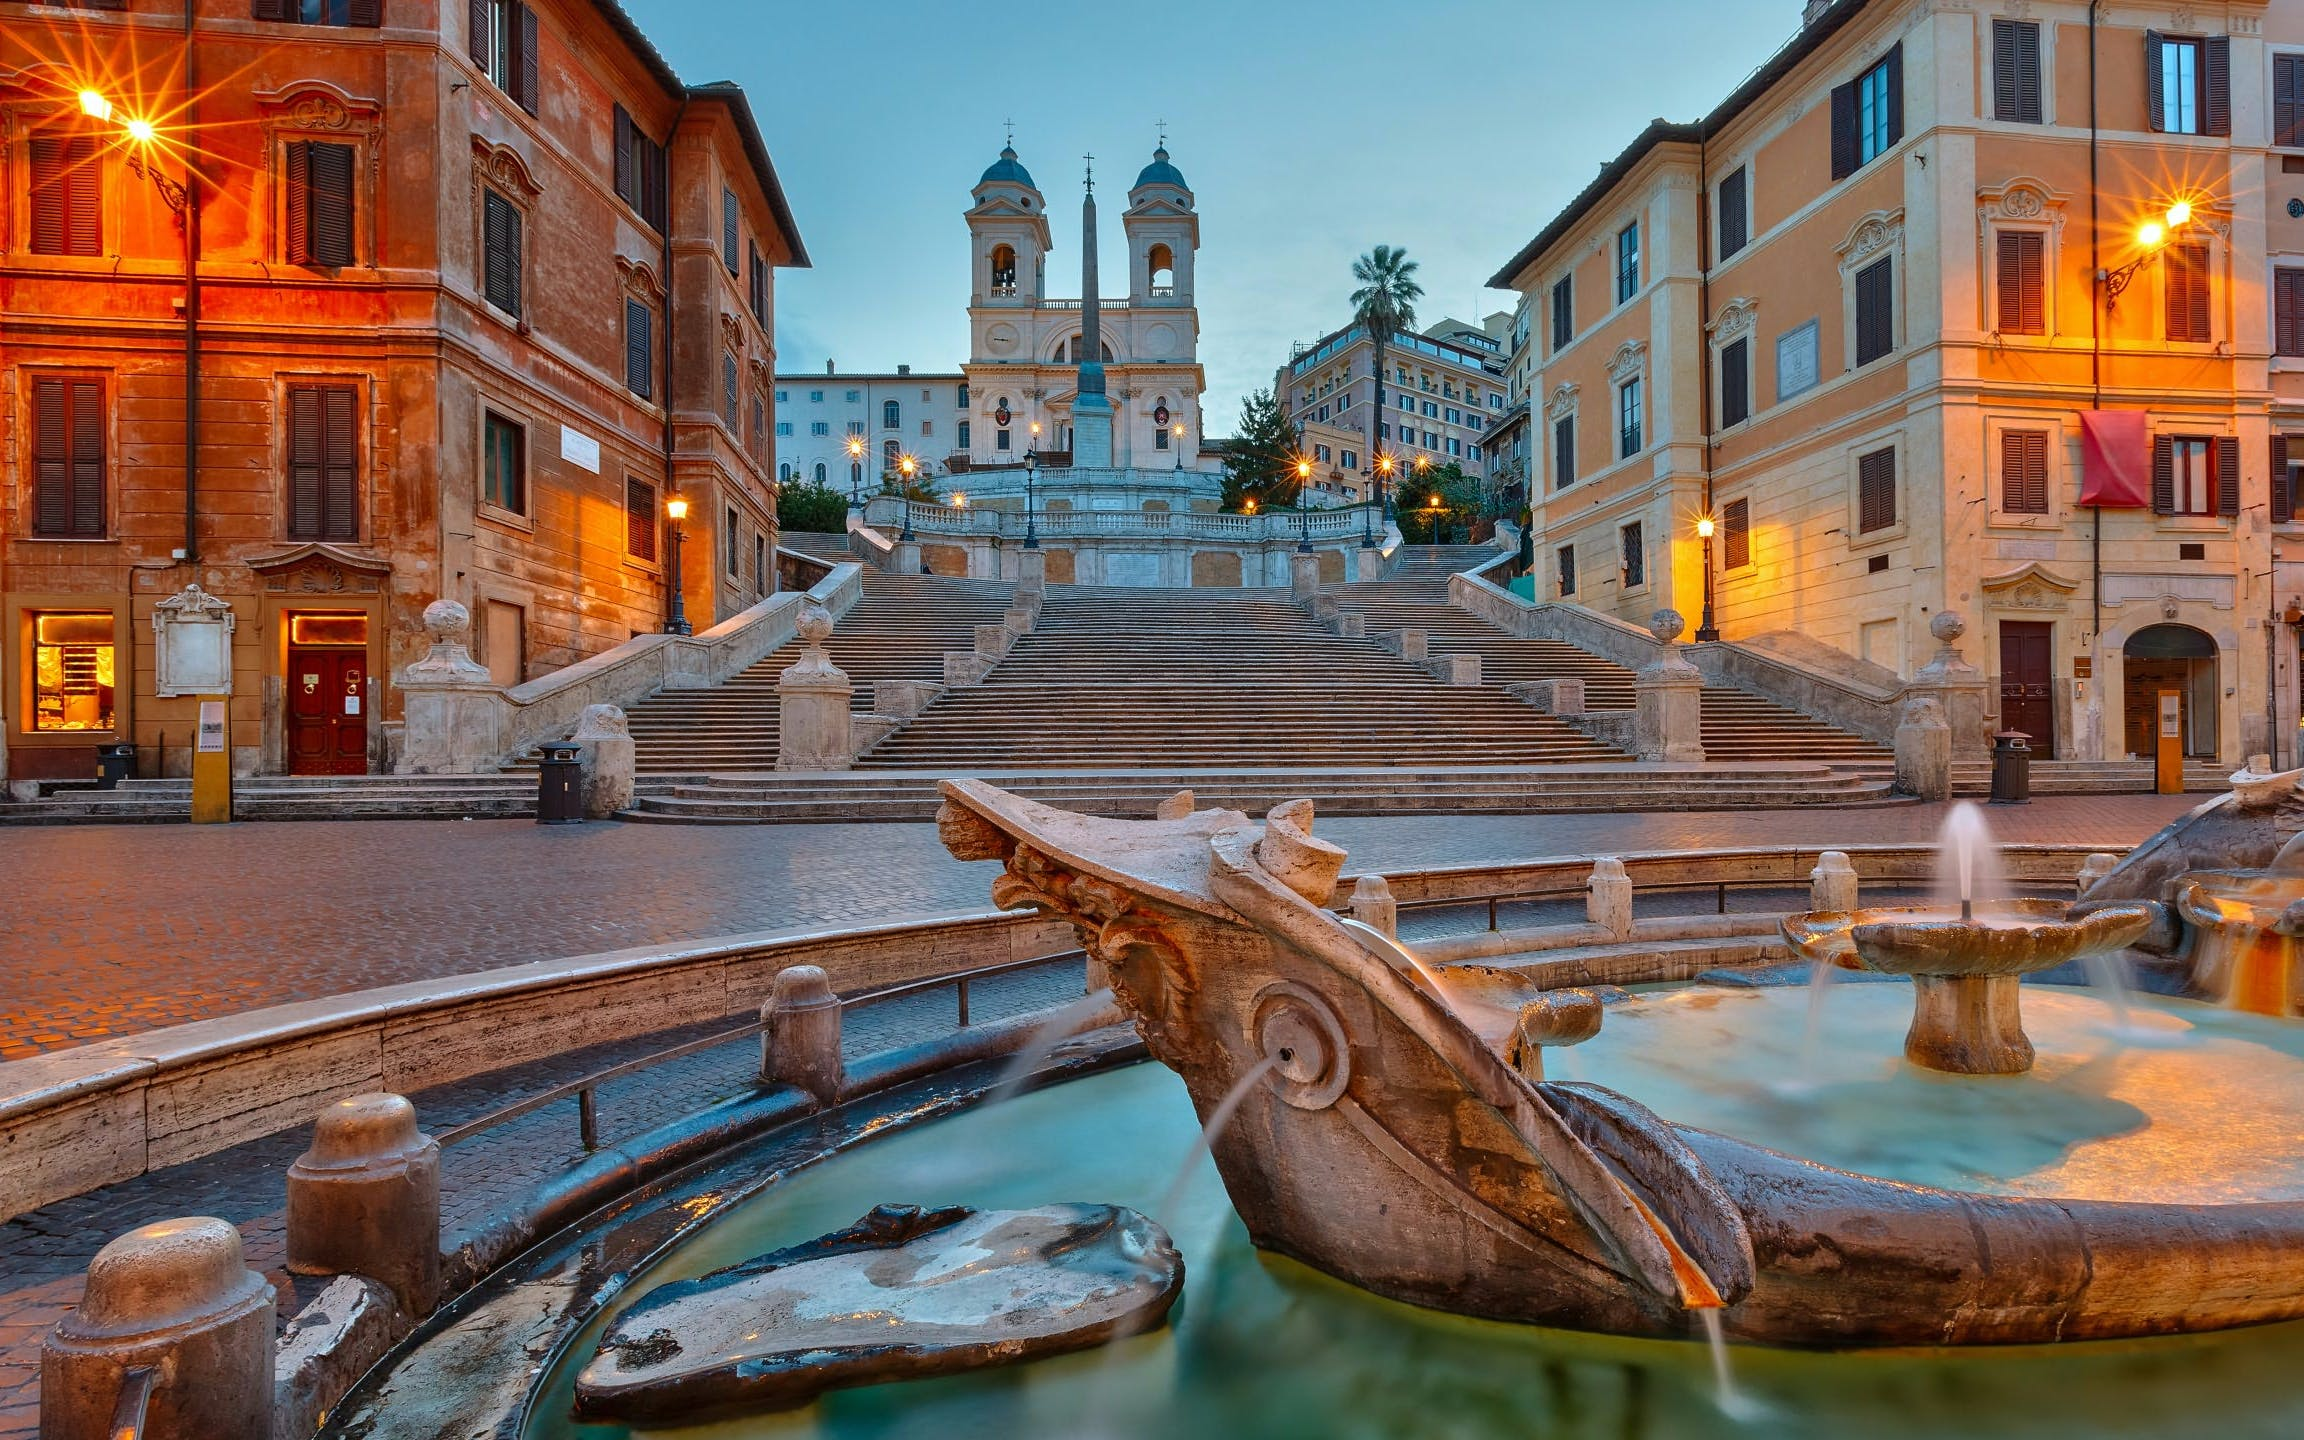 spanish steps to vicus caprarius underground walking tour - express entry-4